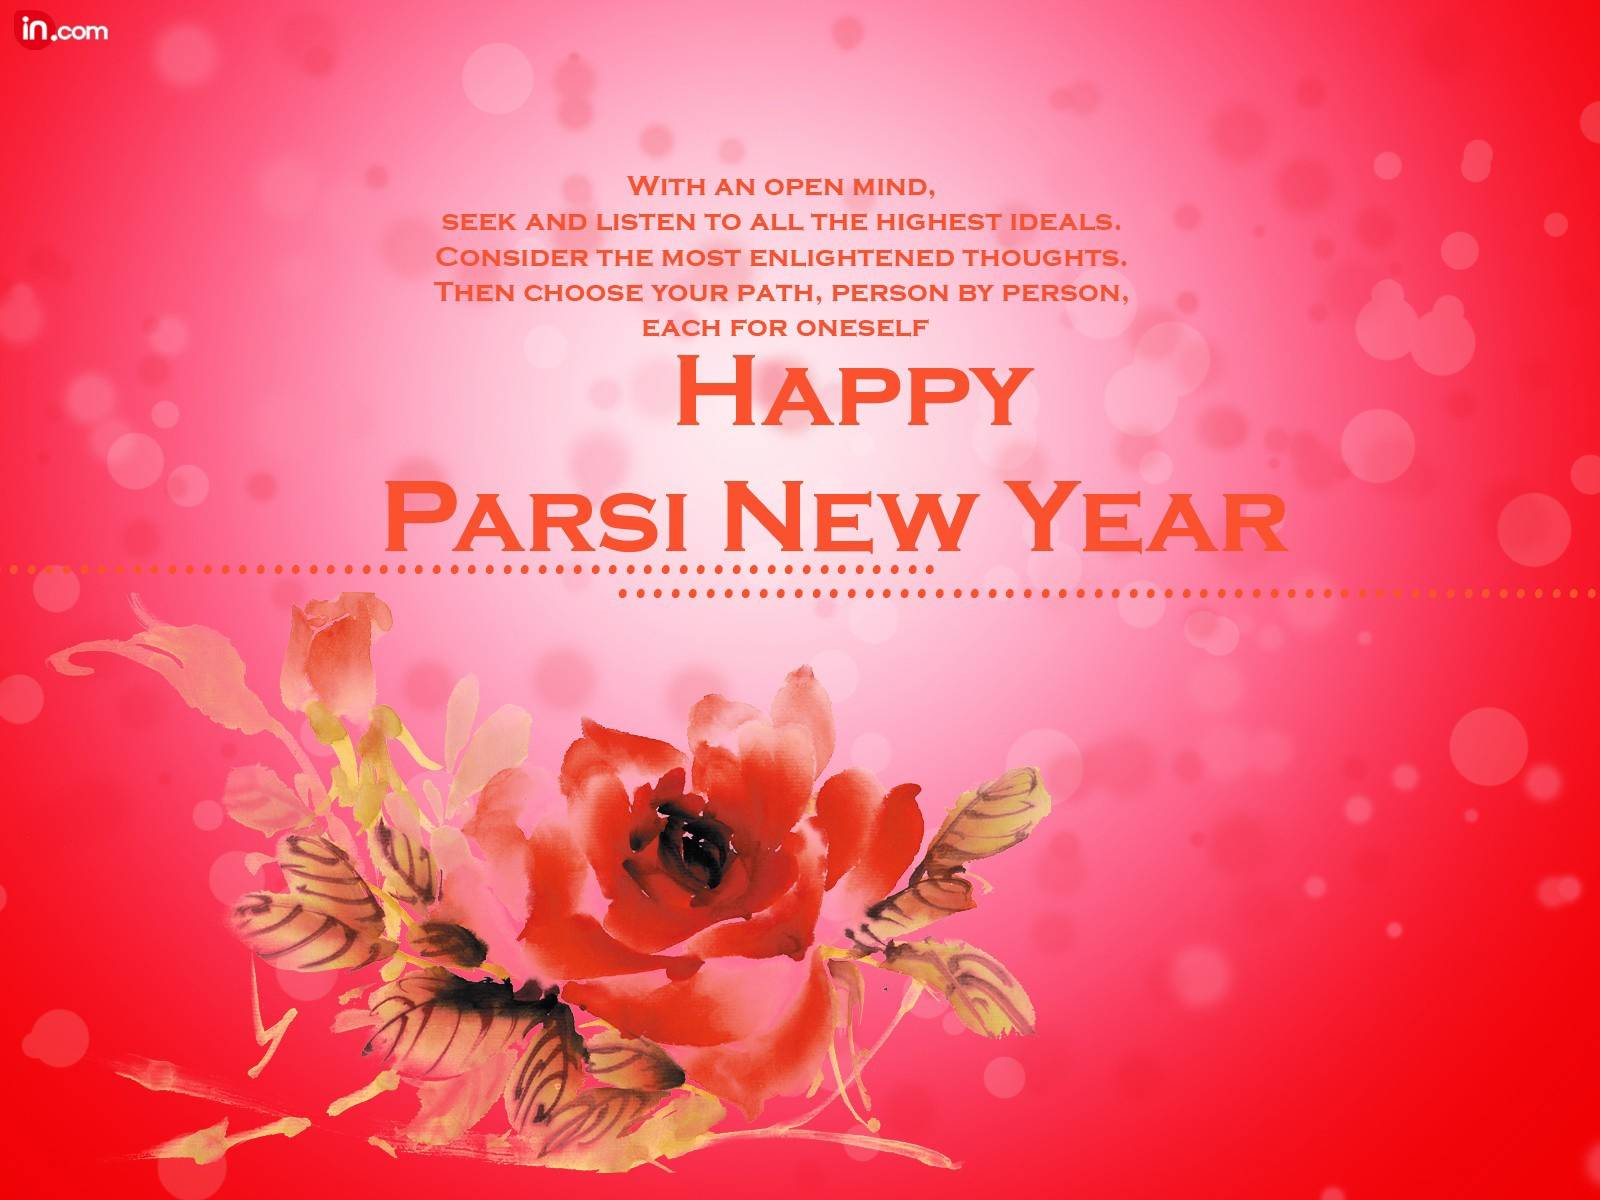 Parsi New Year Greetings Images Photos Wallpapers